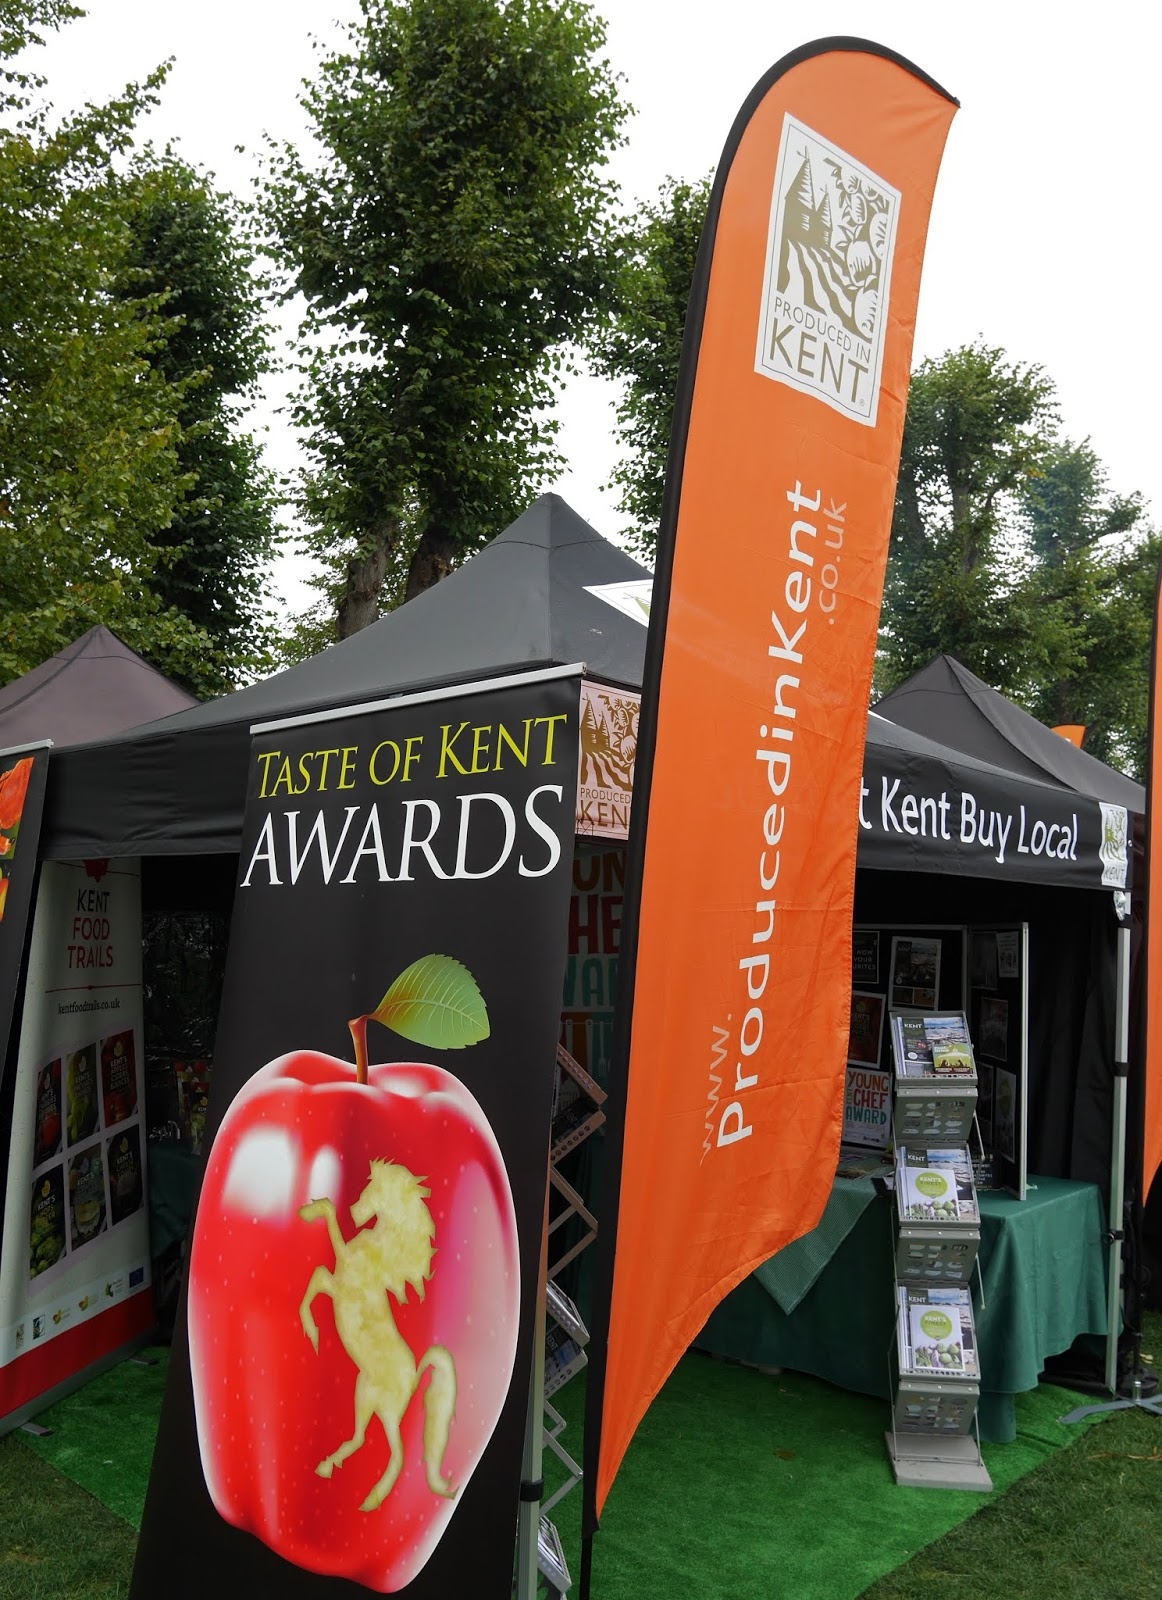 Taste of Kent Awards sign at the Canterbury Food Festival